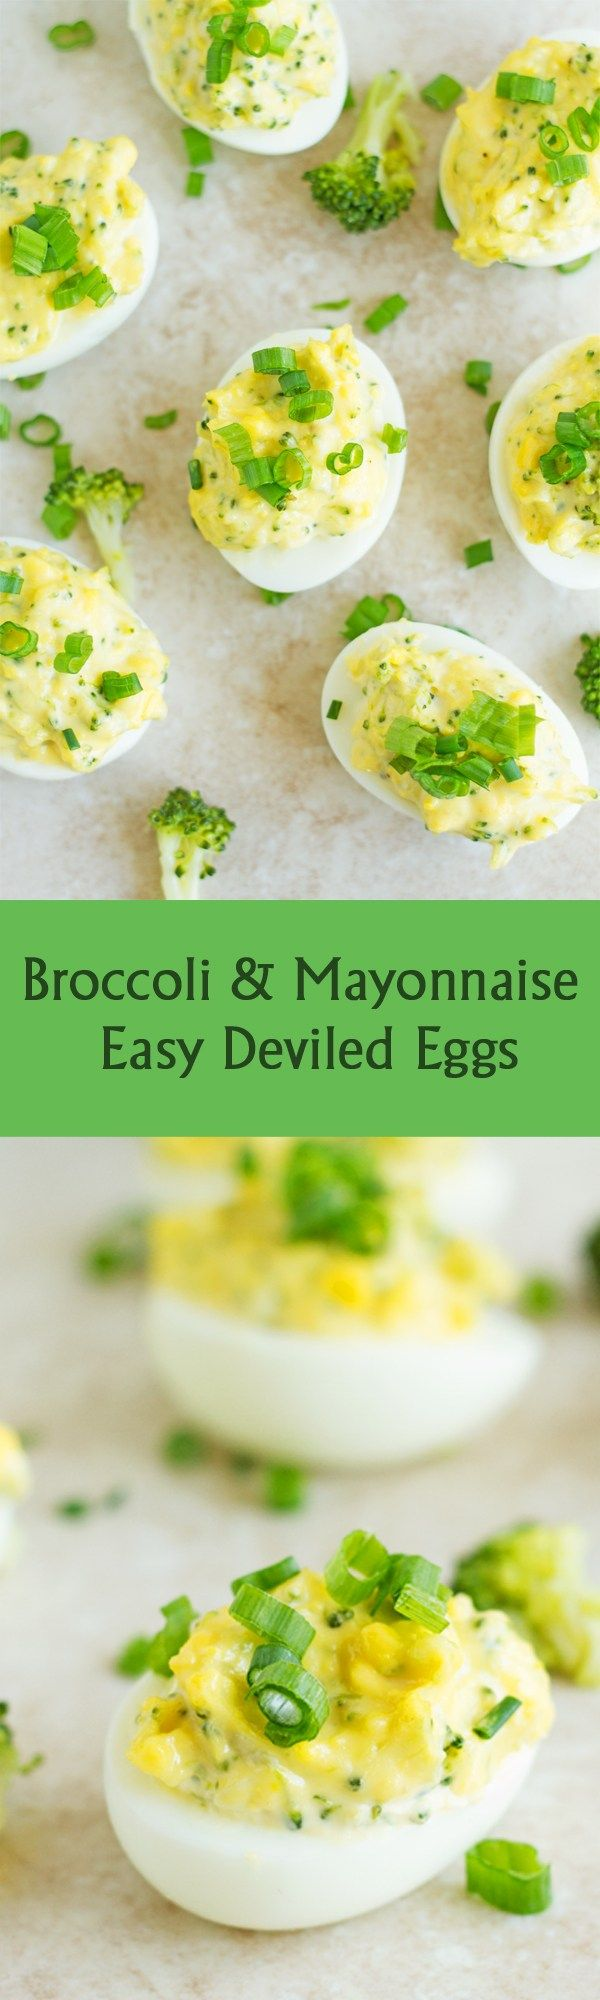 Broccoli & Mayonnaise Easy Deviled Eggs - Vegetarian easy deviled eggs recipe stuffed with broccoli and mayonnaise. This is perfect for Easter, brunch, appetizer or any Party! It can be served with bread of bun by ilonaspassion.com I @ilonaspassion